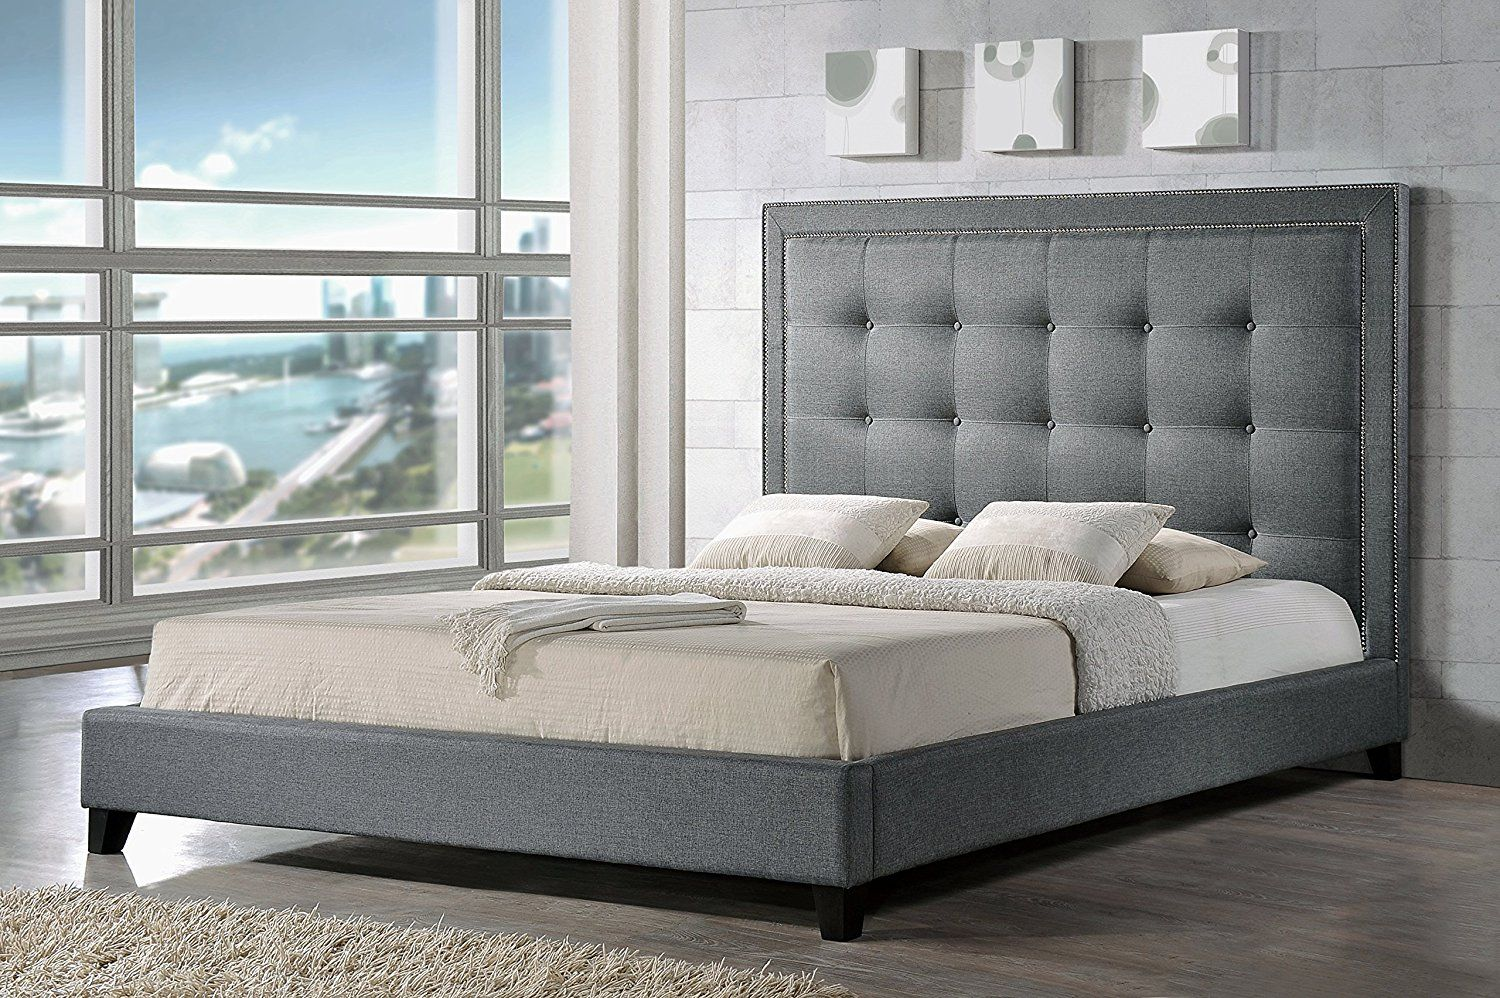 Amazoncom Baxton Studio Hirst Platform Bed King Gray Kitchen